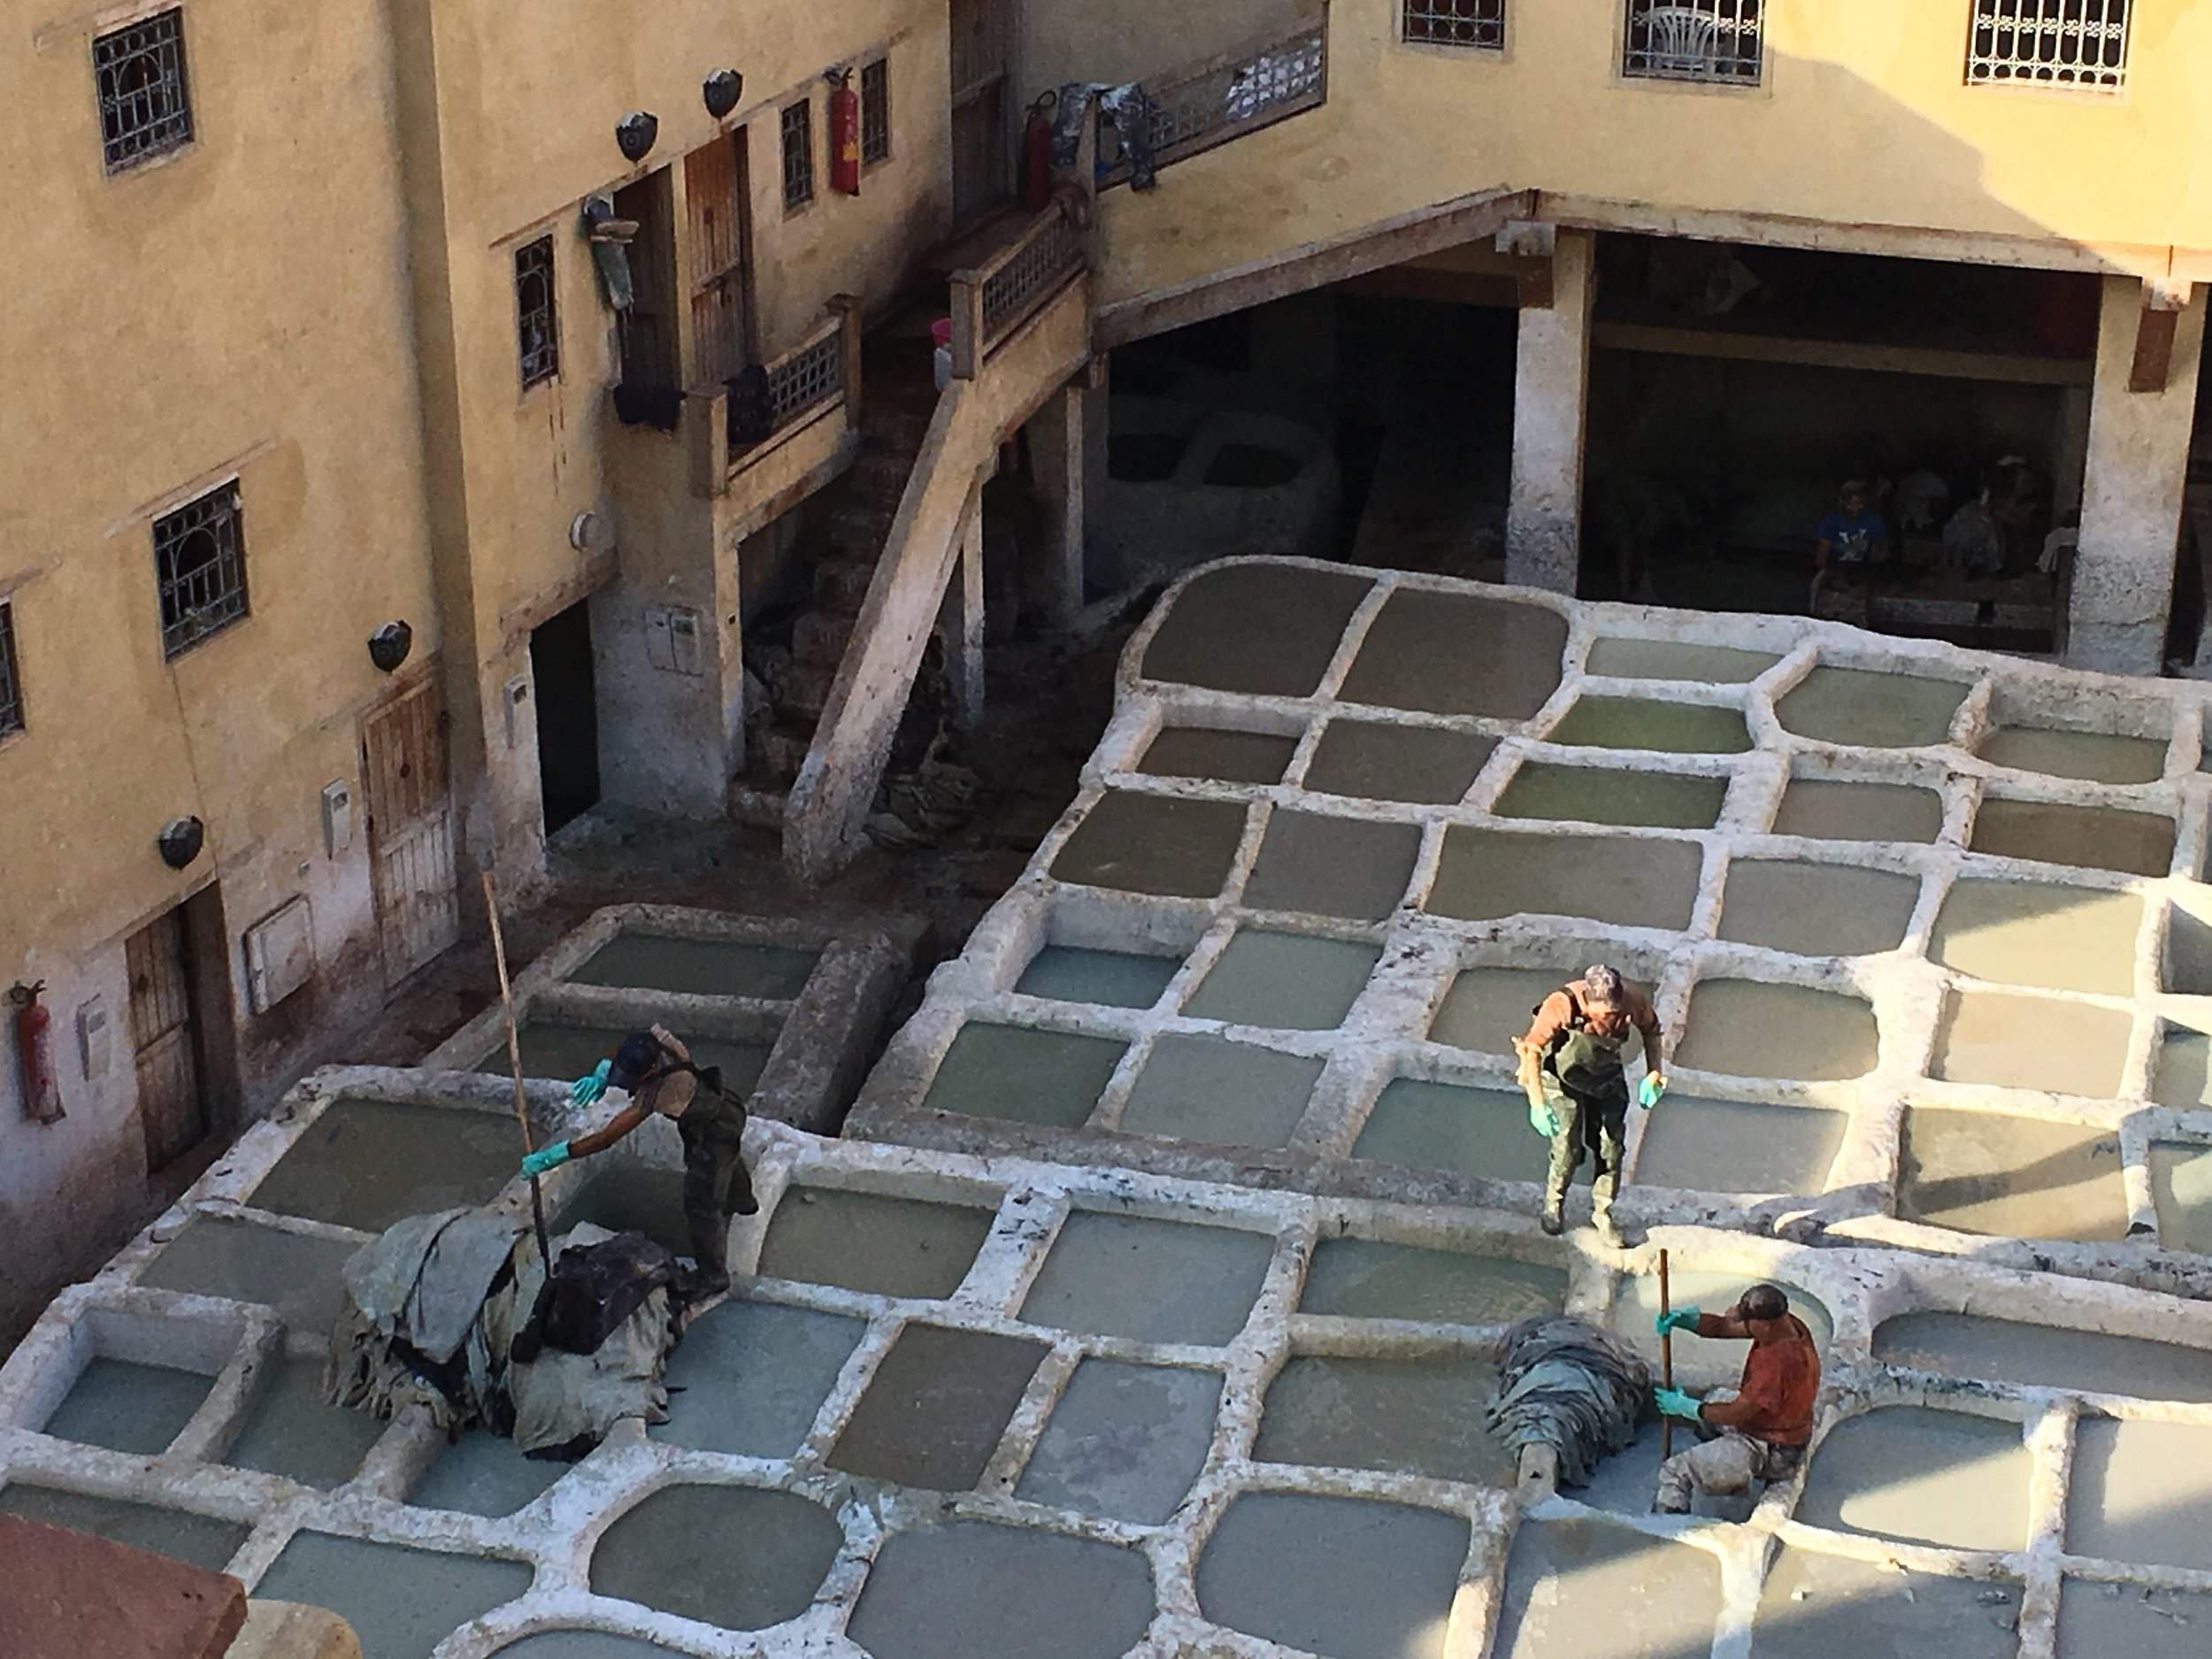 Once the hides enter the tannery, it will be soaked for a few days in white stone baths. The liquid is a mixture of water, cow urine, salt, pigeon droppings, and quicklime used to soften the hides.